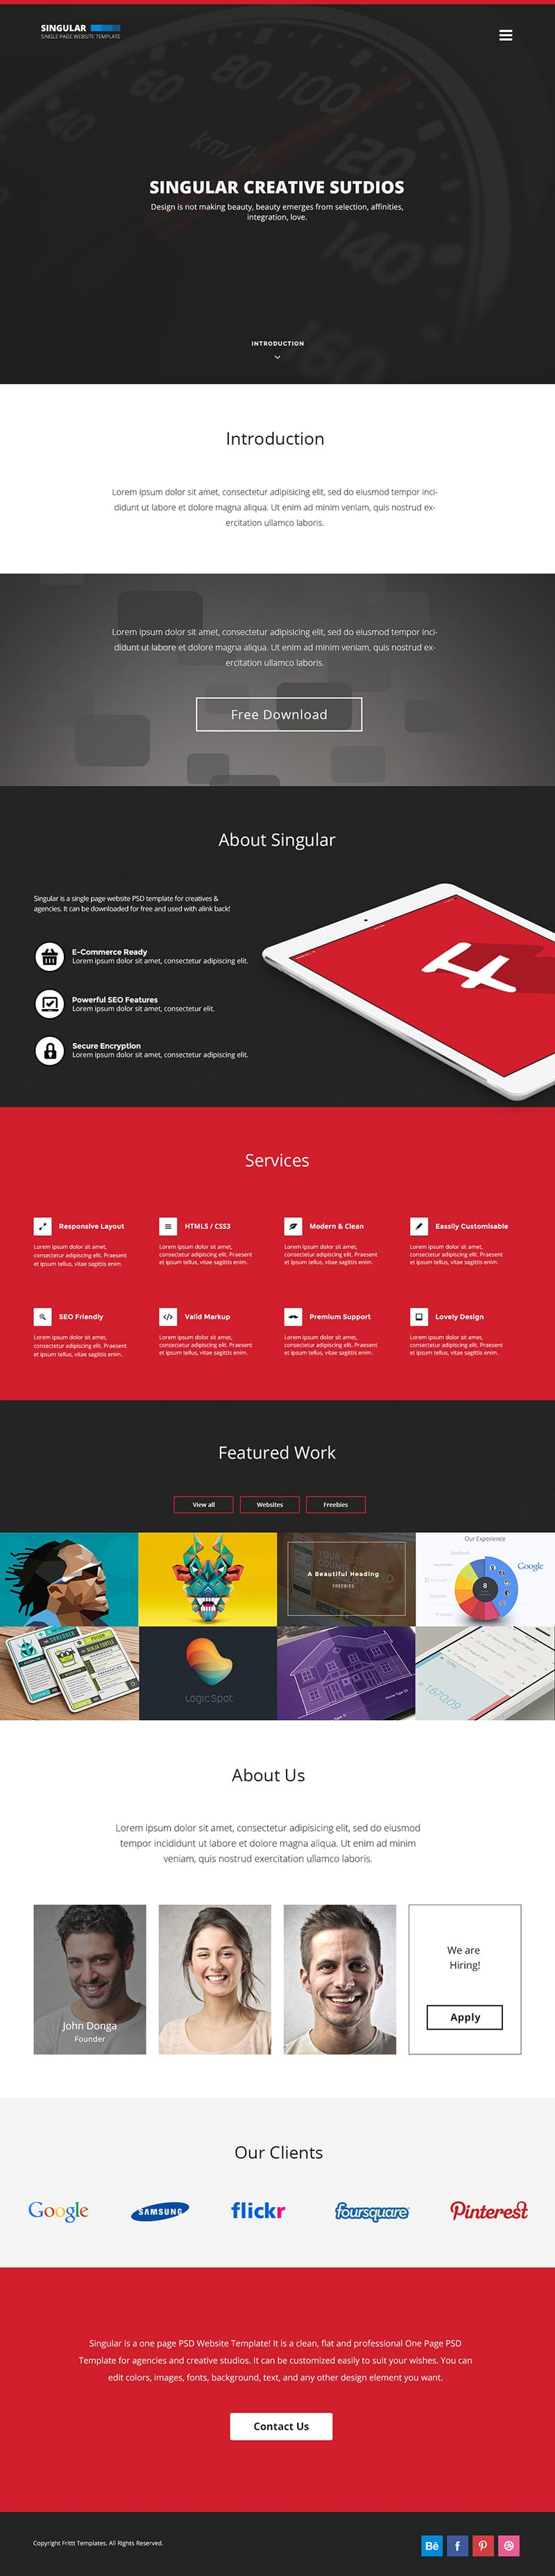 Singular-Free-One-Page-Website-Template